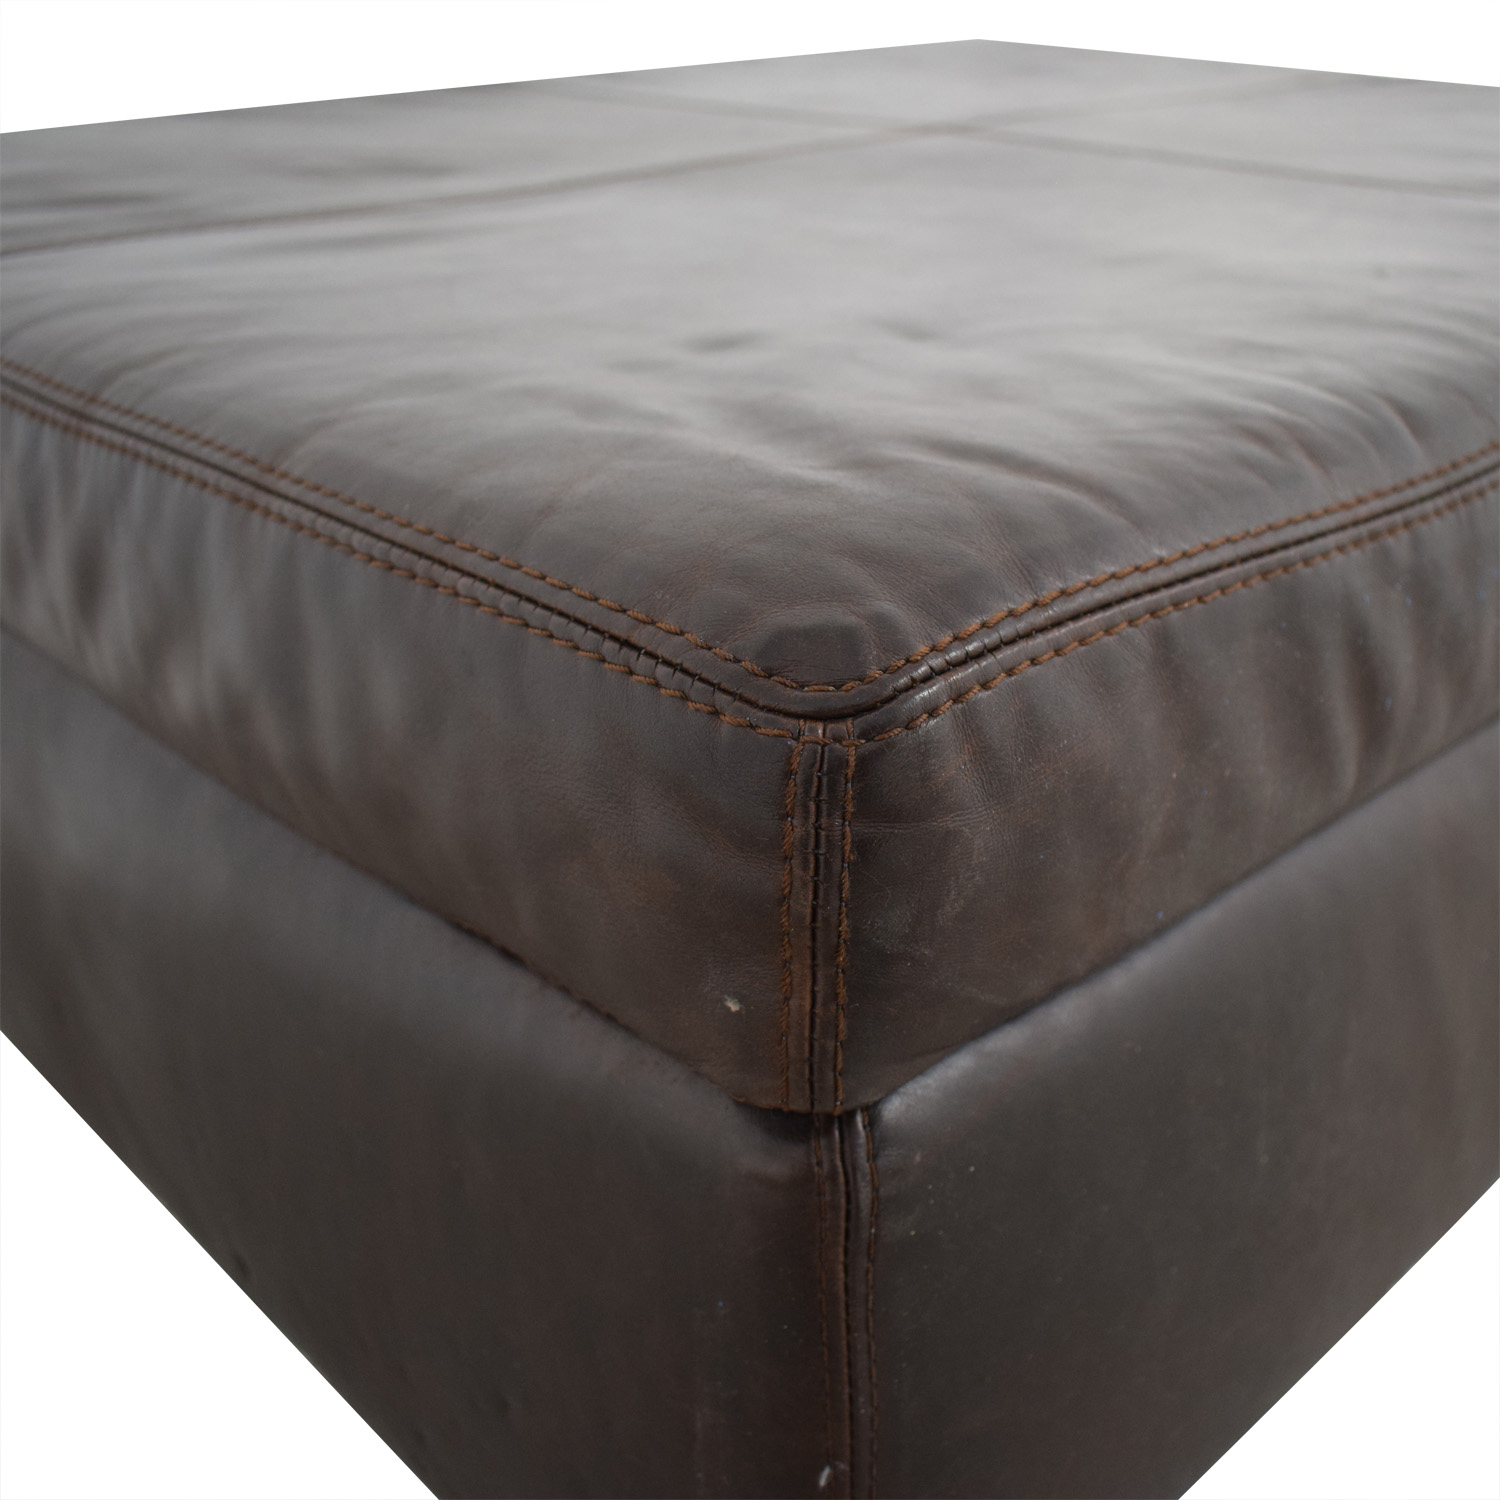 Pottery Barn By Mitchell Gold + Bob Williams Nailhead Ottoman sale